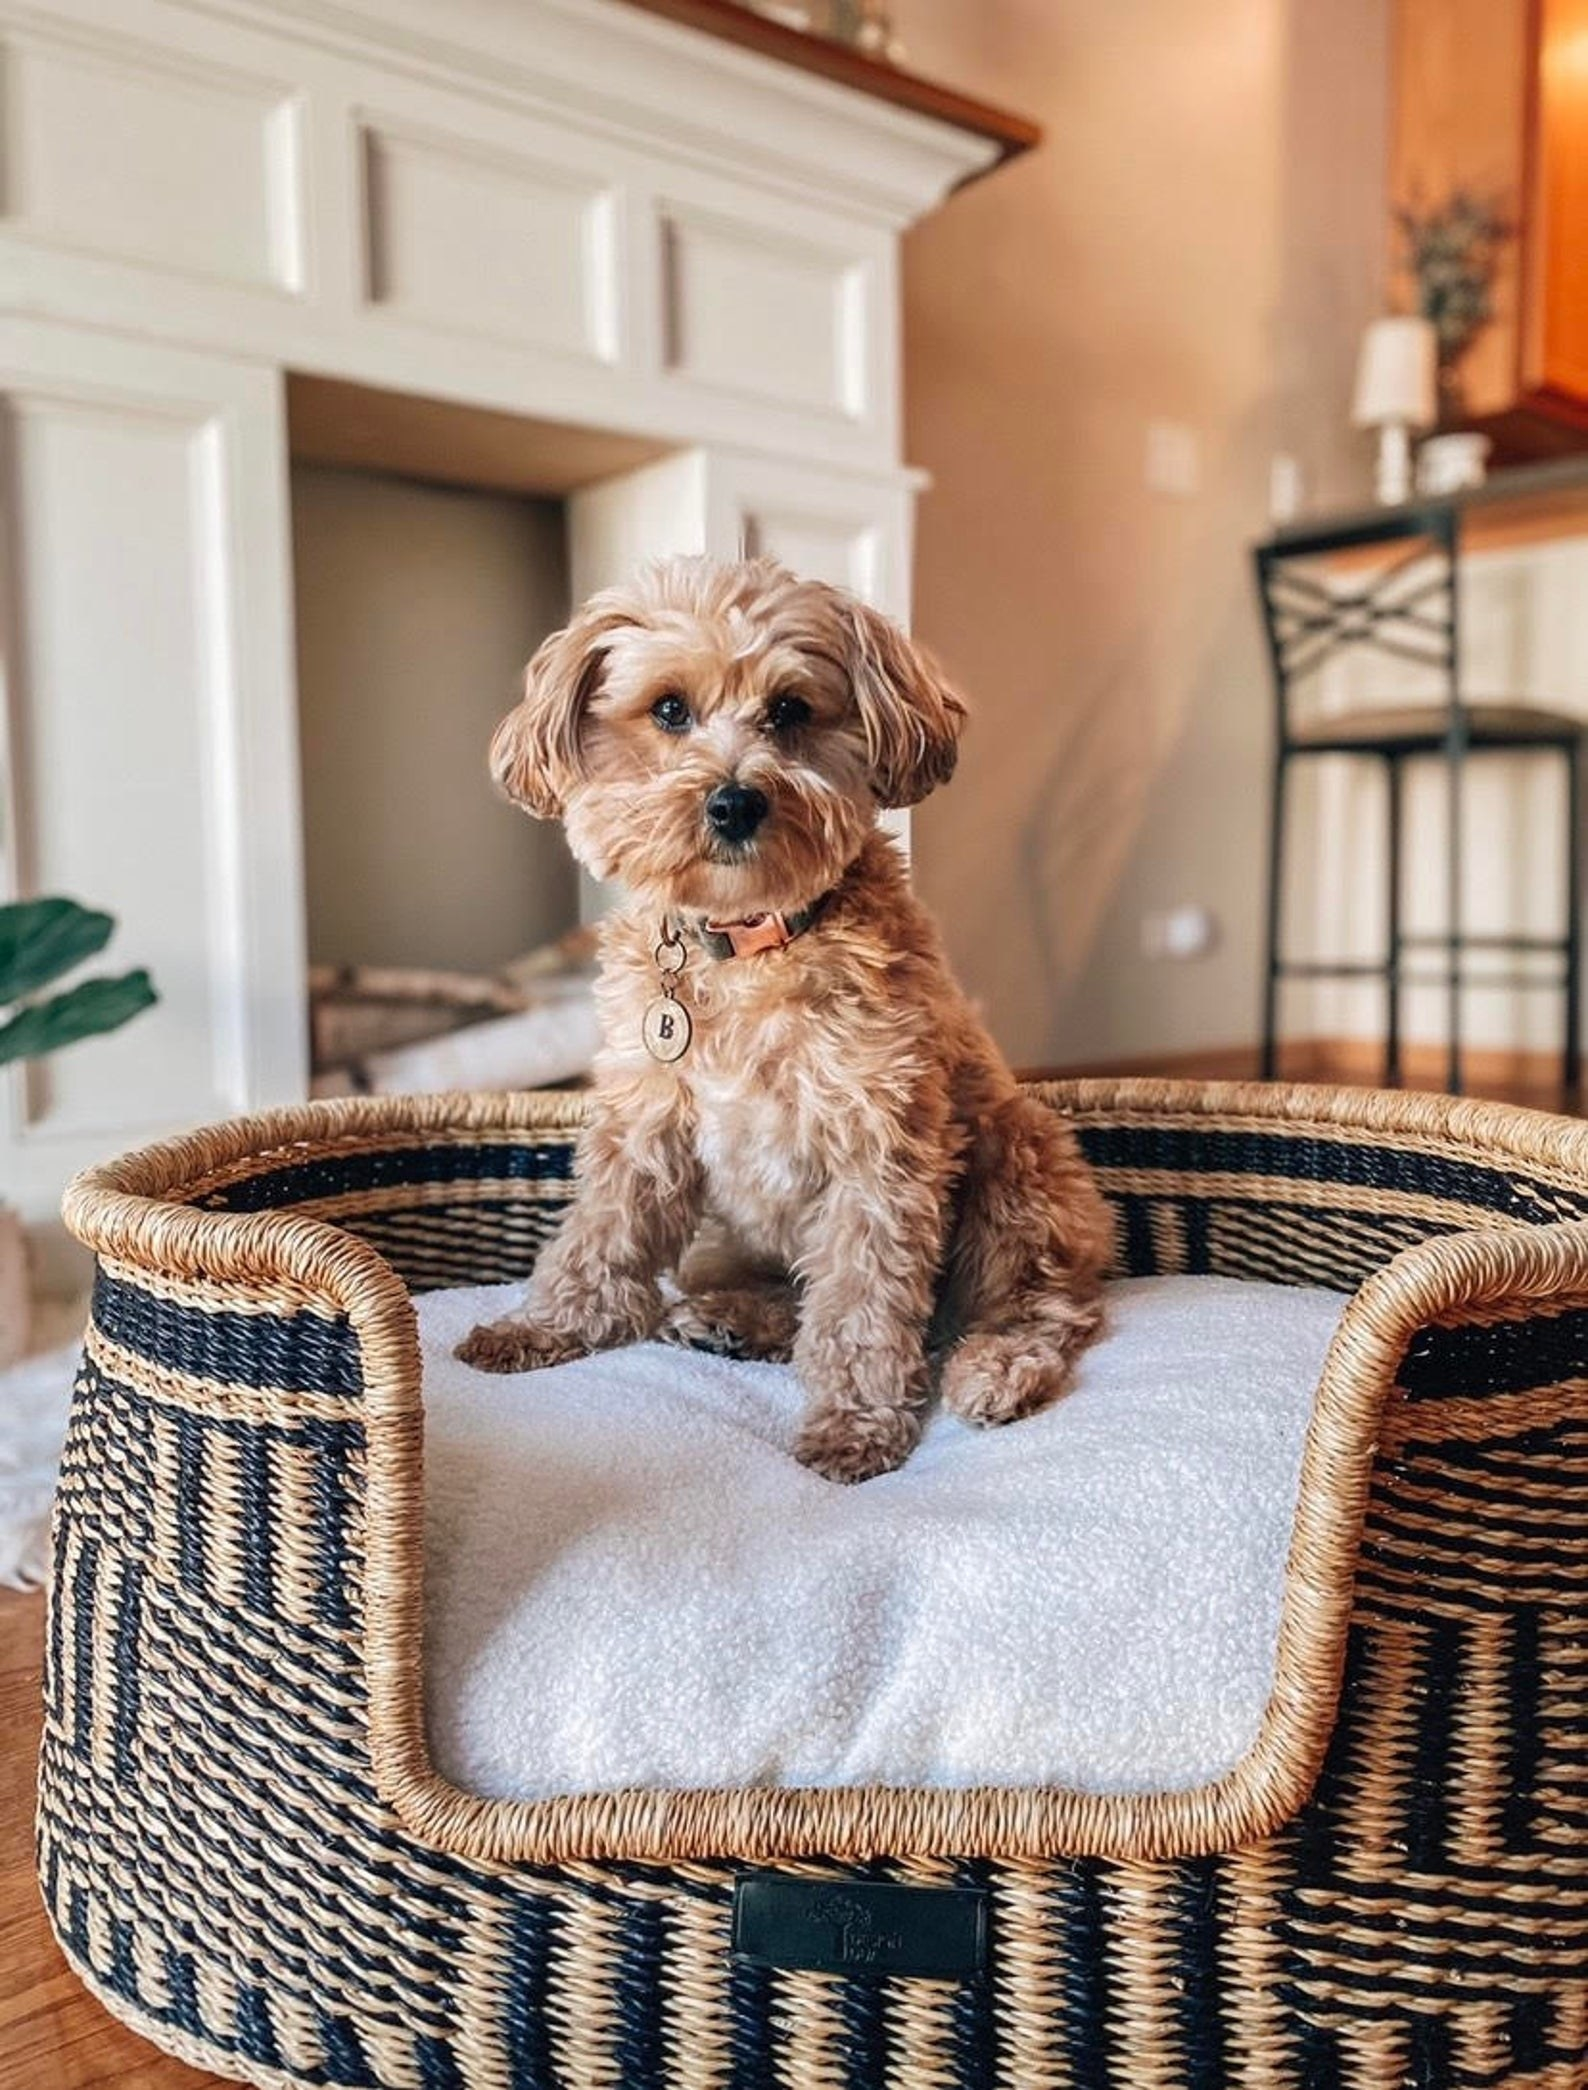 a small dog sits atop a fluffy cushion inside of a handmade basket bed